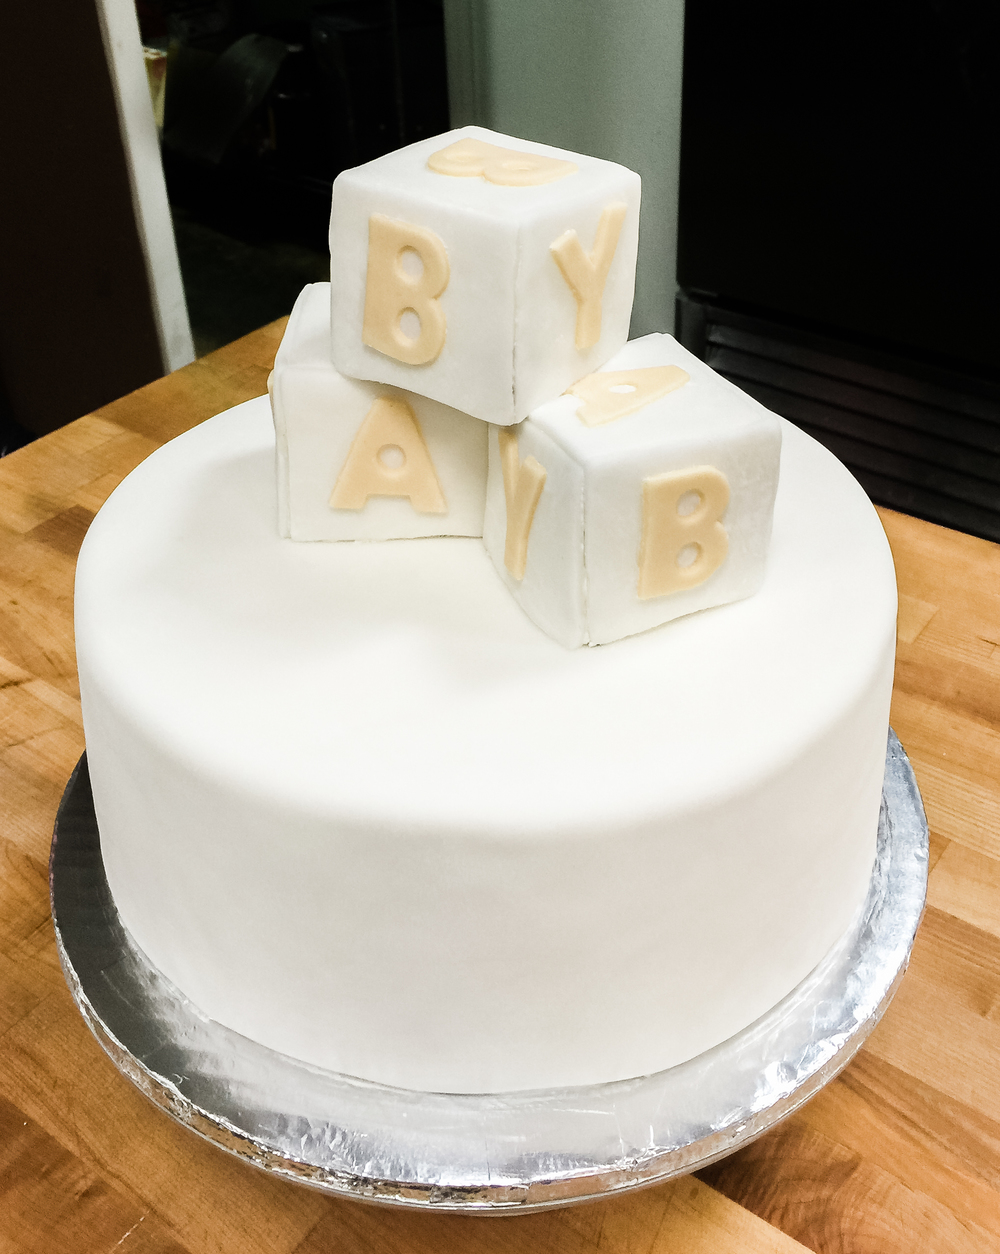 Specialy Cakes Marie Shannon Confections Ventura CA-9.jpg